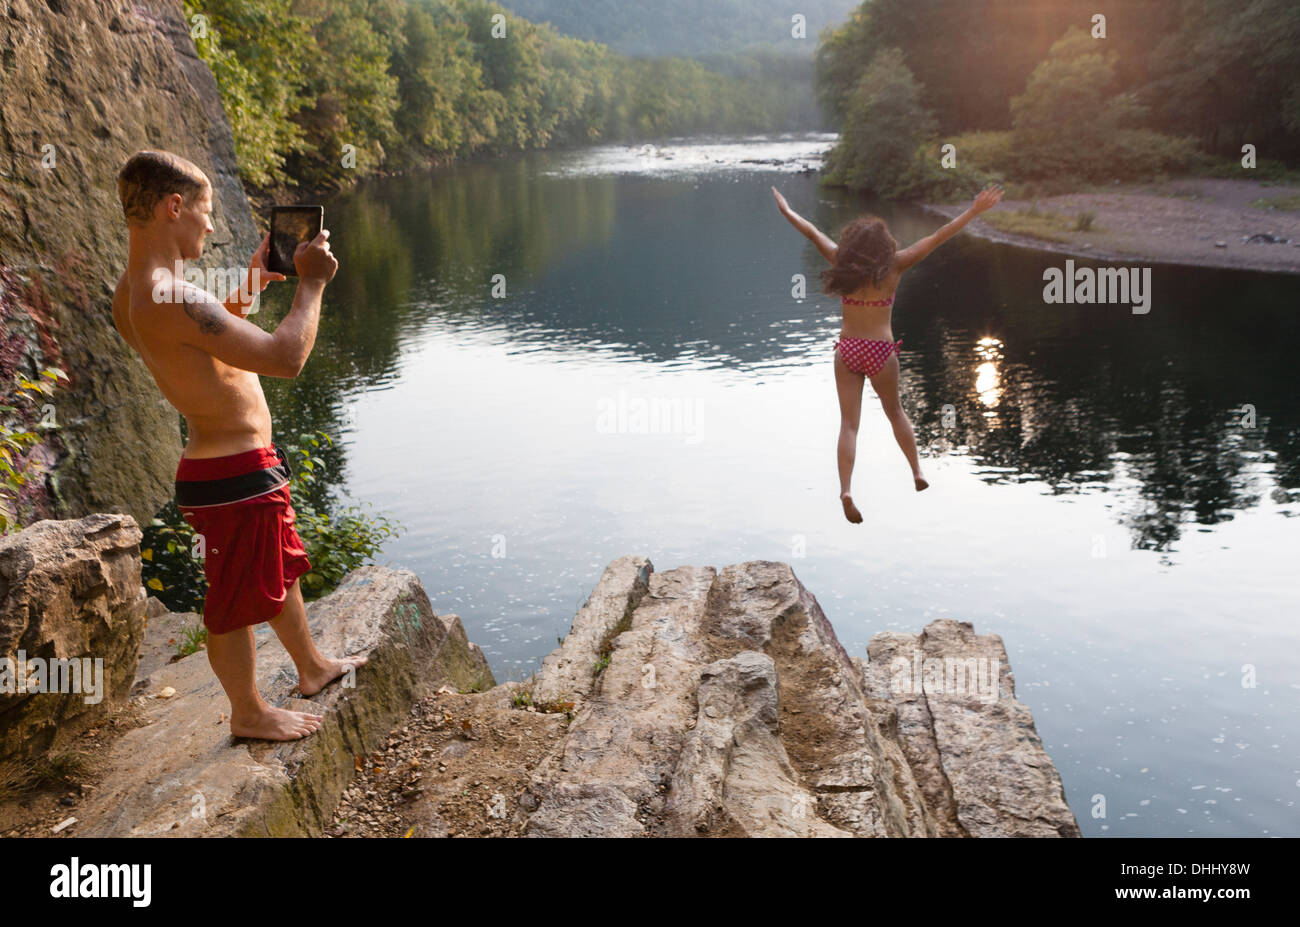 Young jump from rock ledge, Hamburg, New York, USA Photo Stock